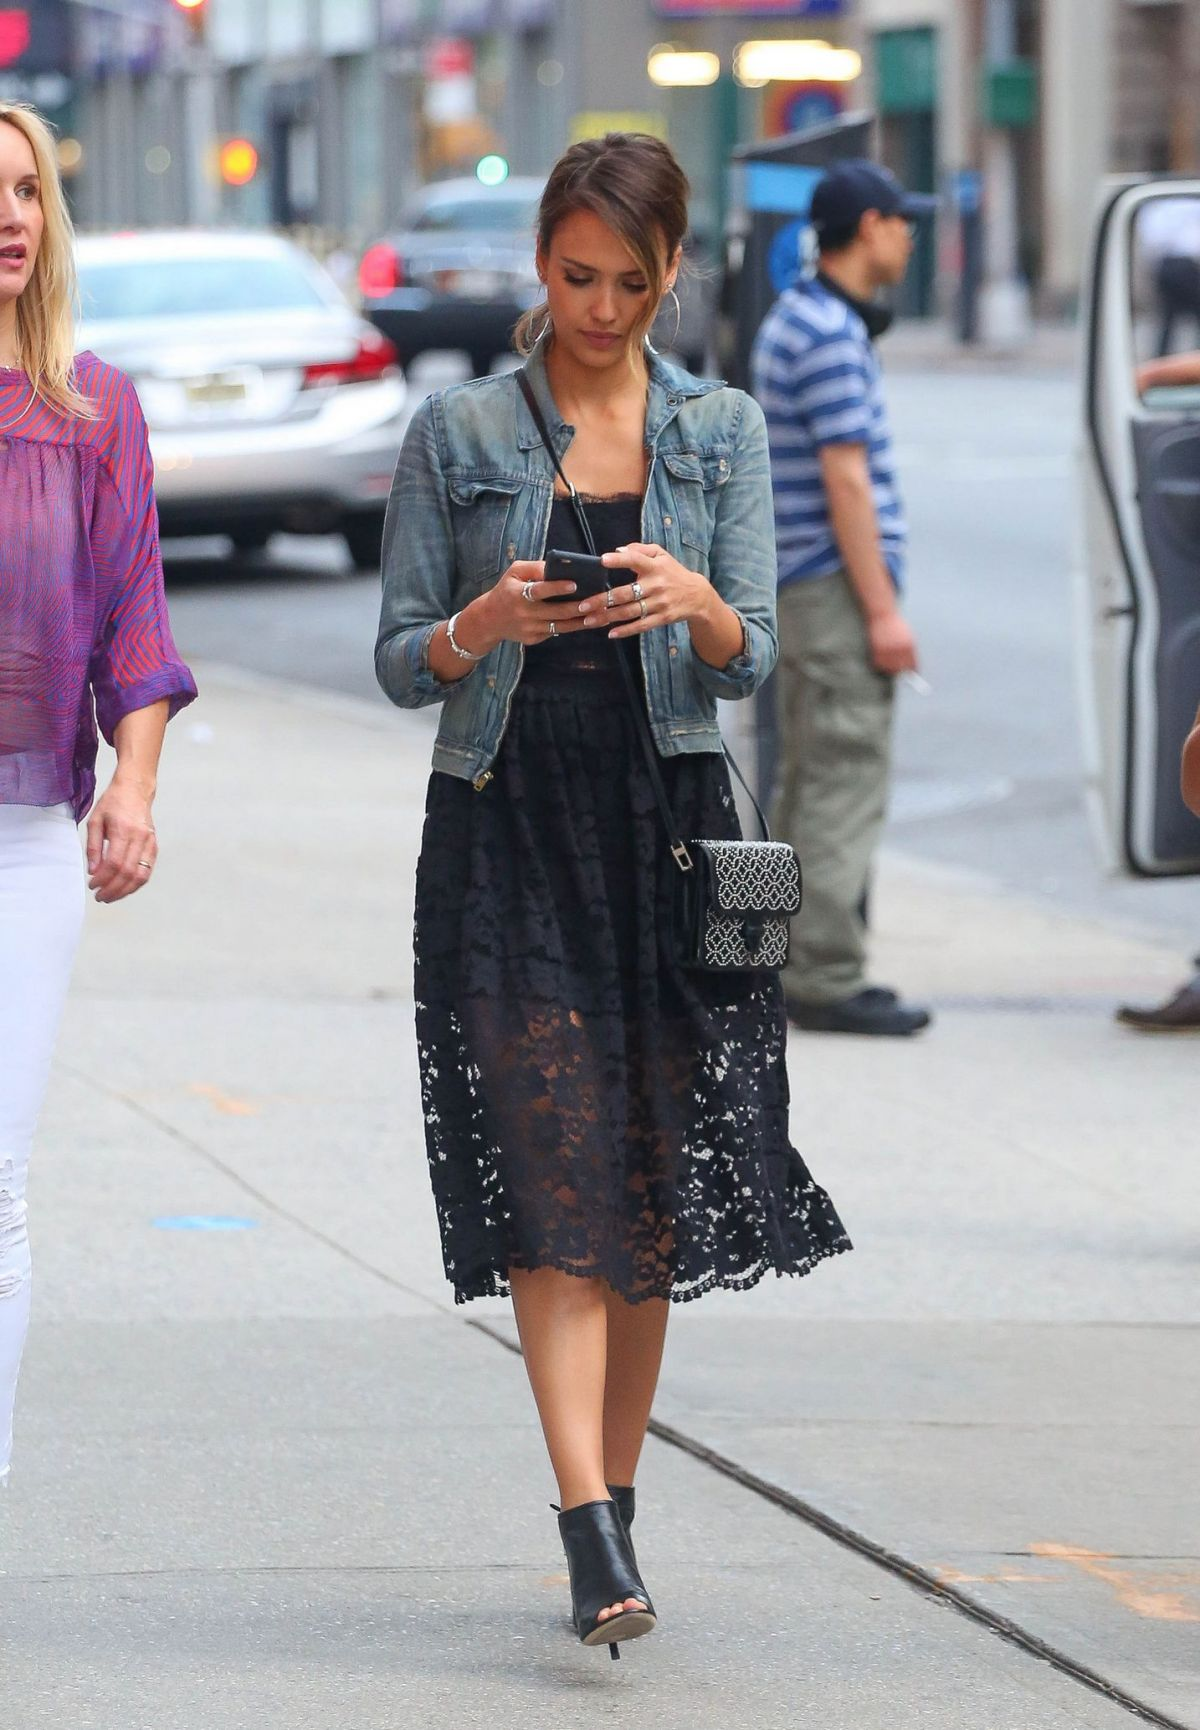 JESSICA ALBA Out and About in New York 06/11/2015